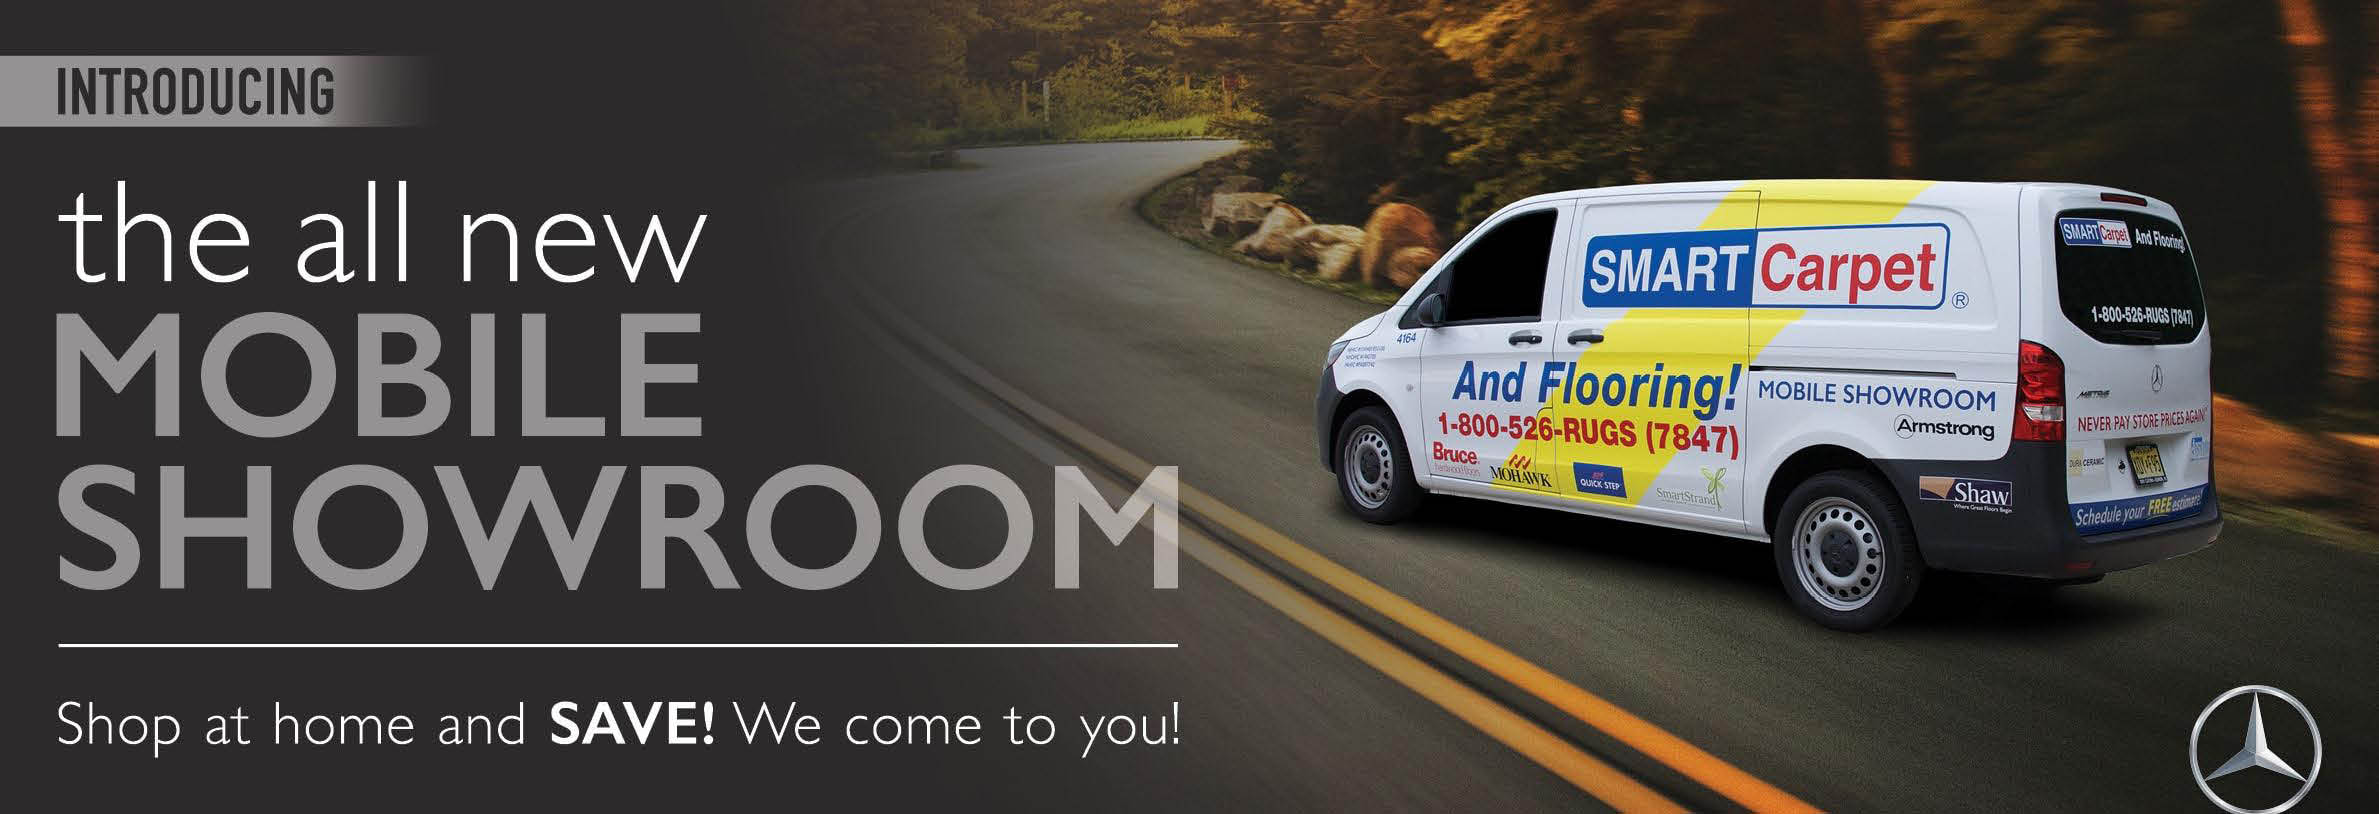 Shop at home carpet and flooring with Smart Carpet's Mobile Showroom